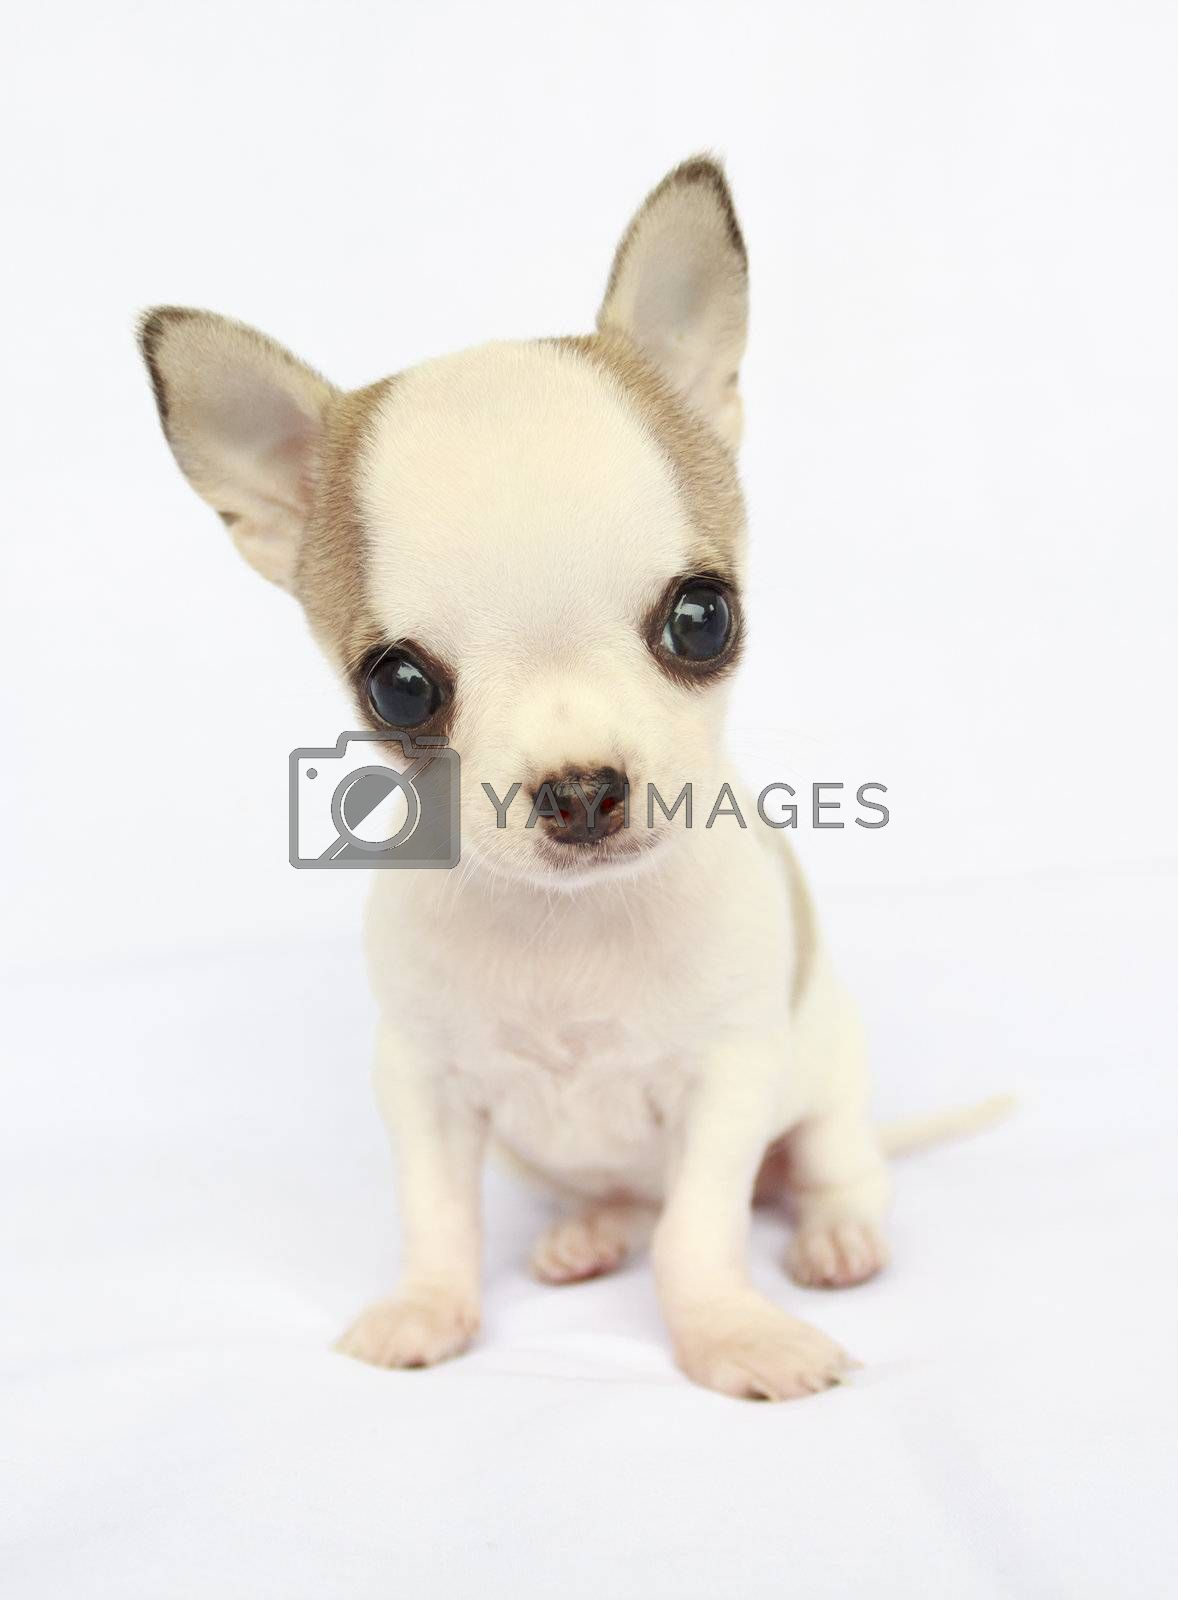 Puppy female chihuahua sitting on white fabric